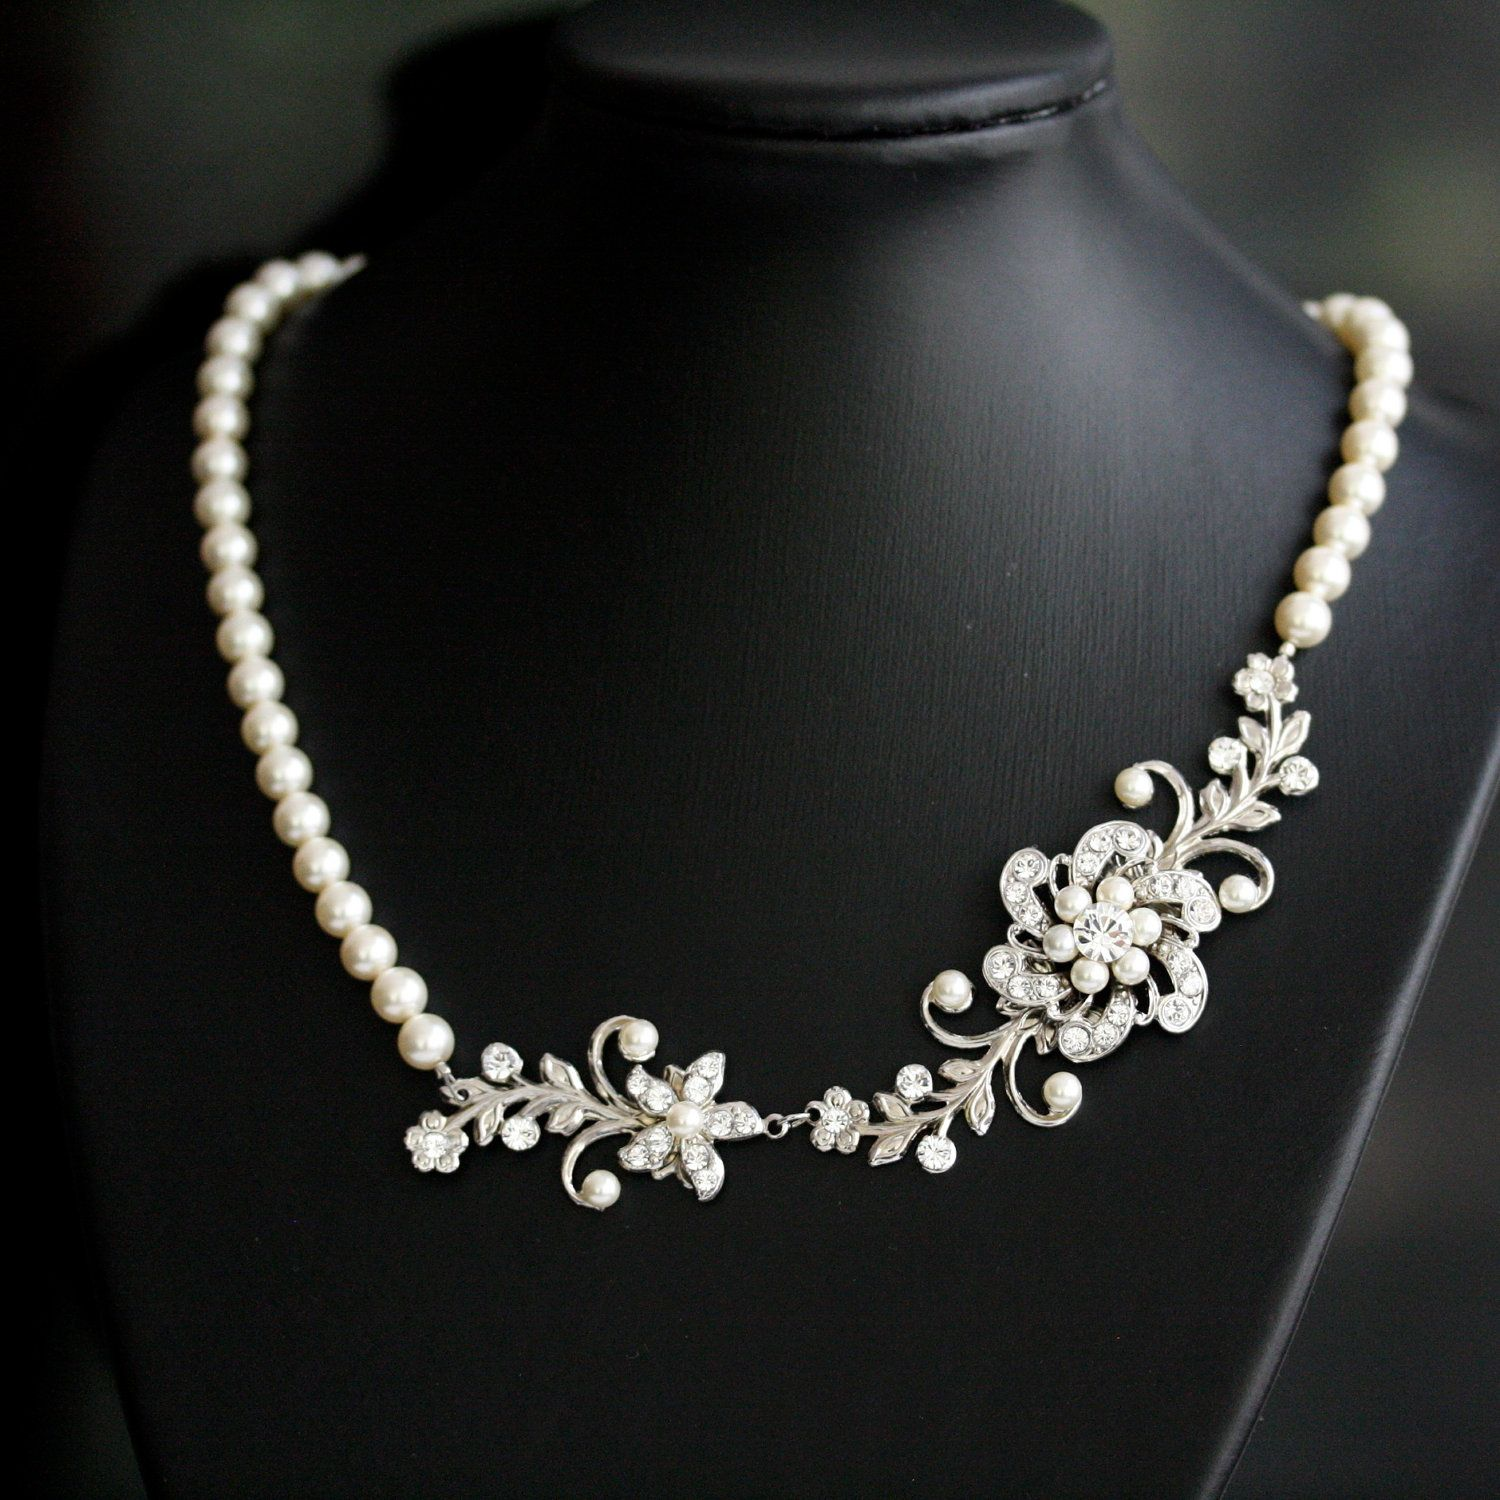 Bridal Pearl Necklace Wedding Necklace Vintage Bridal Necklace